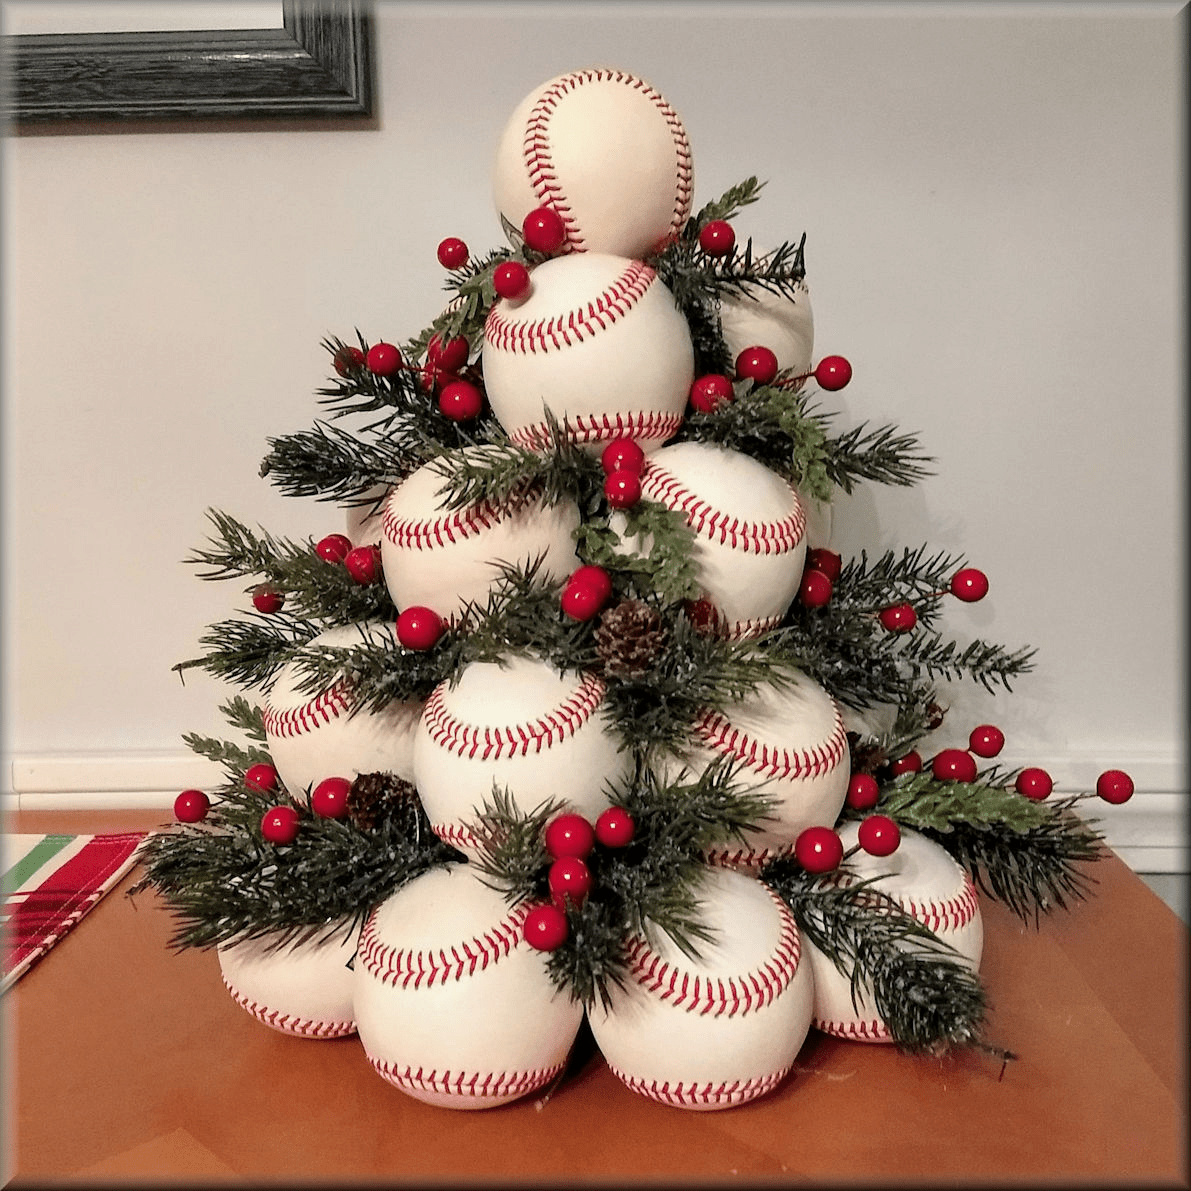 New White Leather Baseballs Christmas Tree<br>ONLY 1 LEFT!